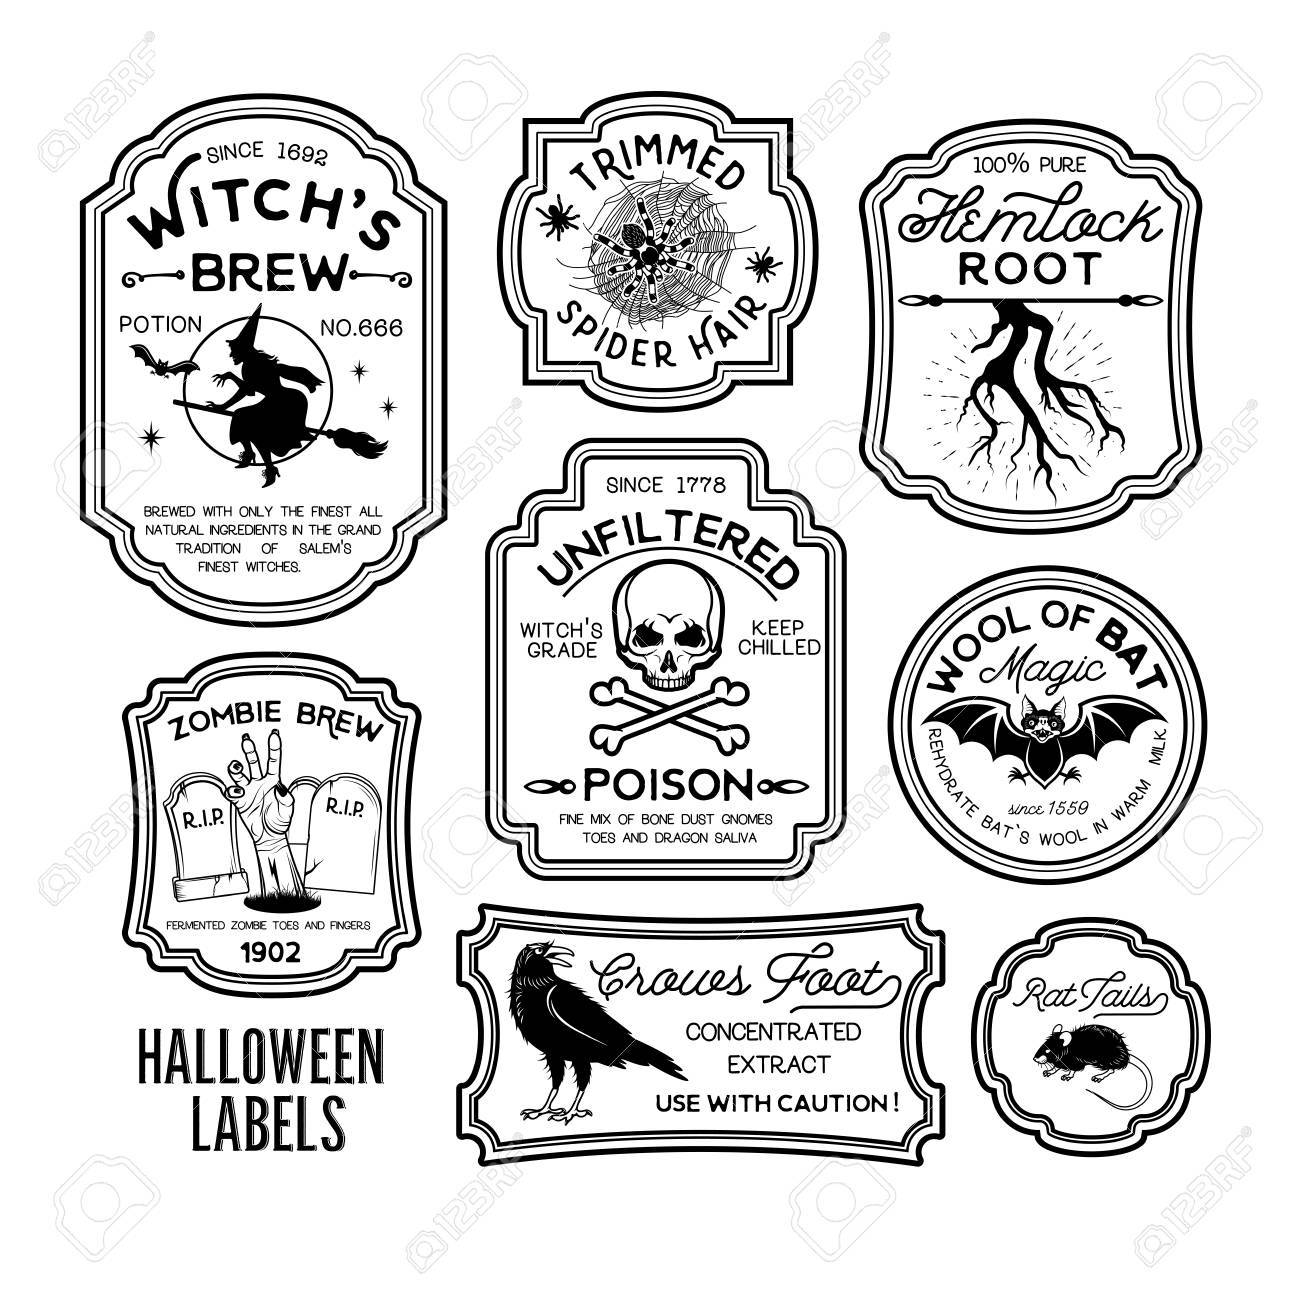 Set Of Halloween Bottle Labels Royalty Free Cliparts Vectors And Stock Illustration Image 87706481